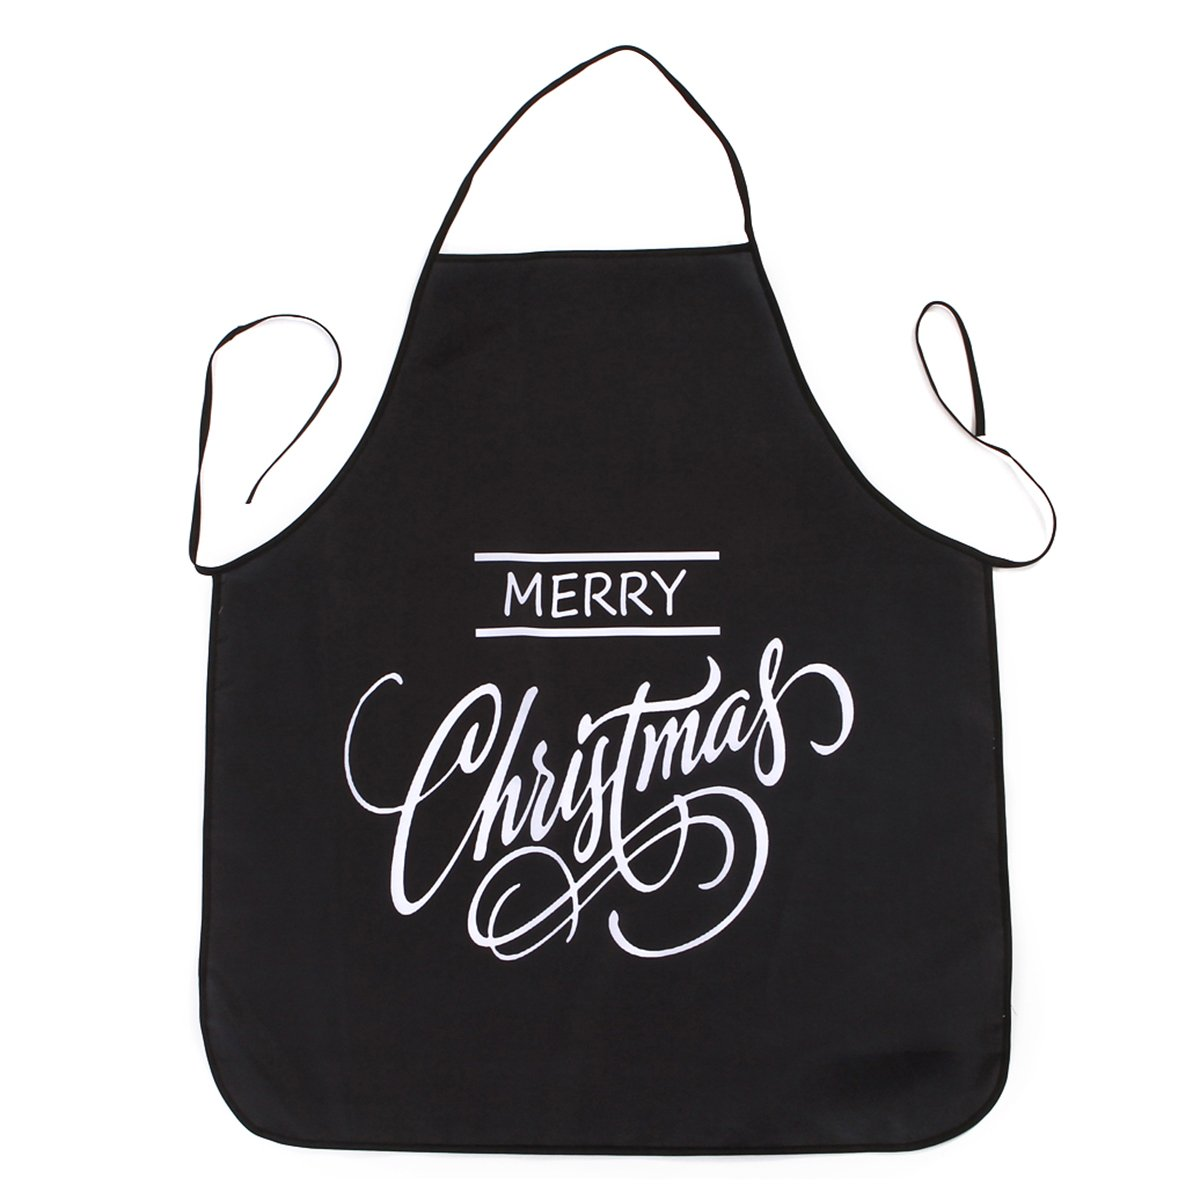 OULII Christmas Apron Adult Apron Family Dinner Cooking Baking Chef Christmas Gift Apron (Black)